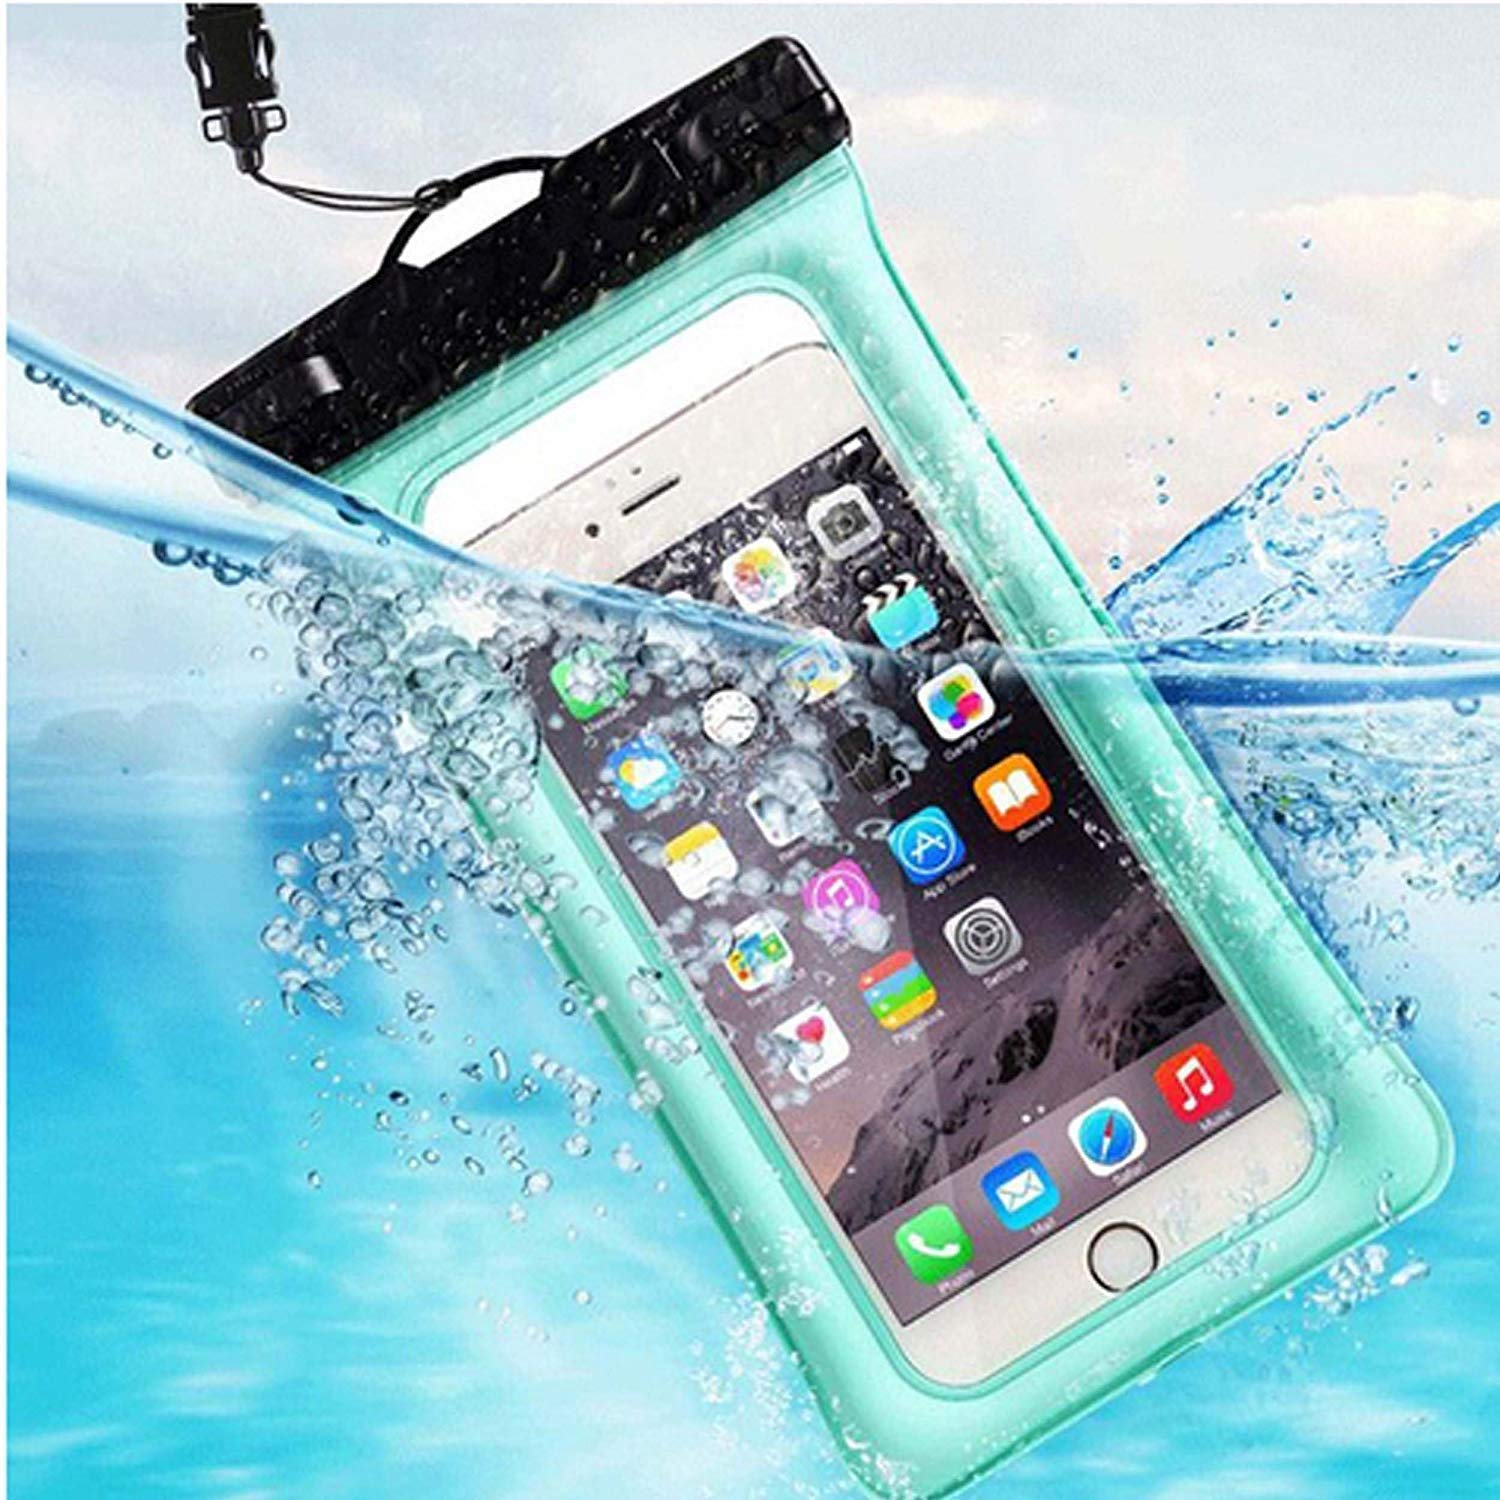 MQOUNY Waterproof Phone Pouch,2 Pack Floating Waterproof Case Waterproof Phone Case IPX8 Available TPU Clear Dry Bag for iPhoneXs/Xs Max/XR/8/8plus/7/6s/6/6s Plus Samsung up to 6.5'' (Black-Black) by MQOUNY (Image #6)